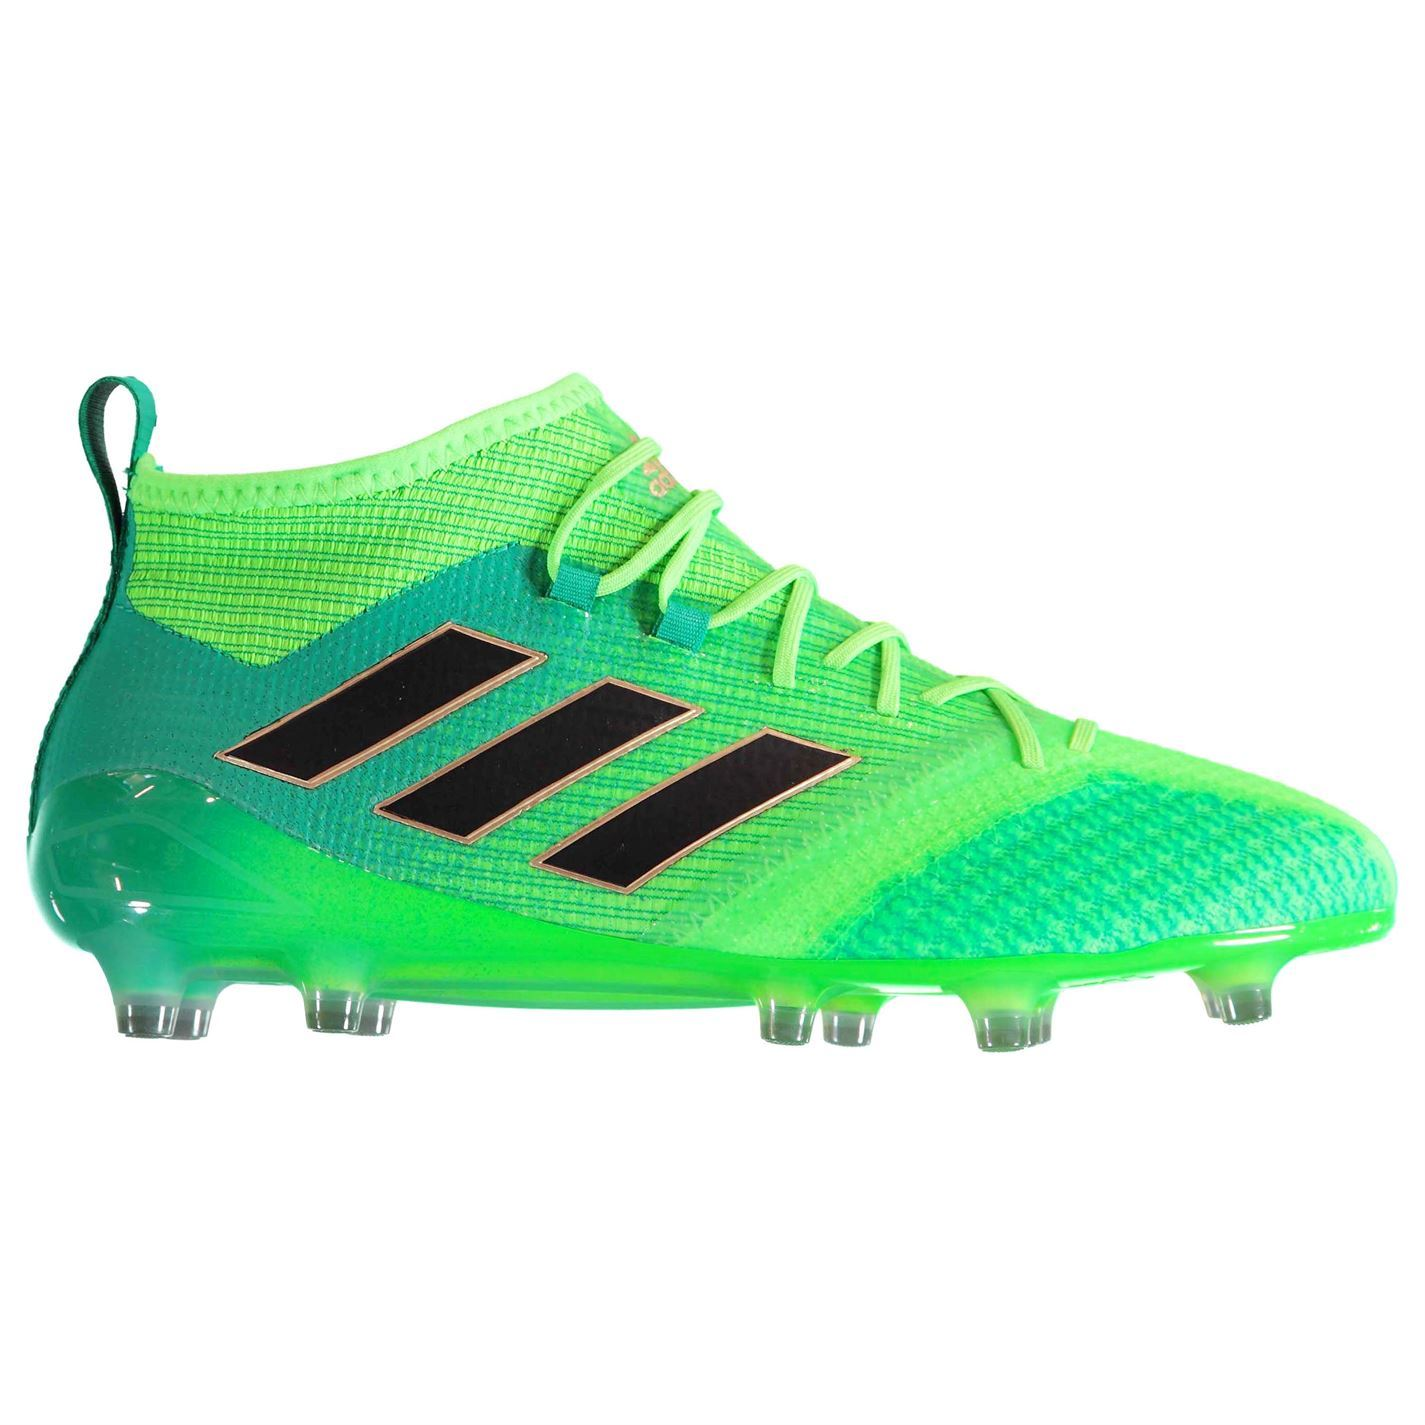 on sale 8005e 17d85 adidas Mens Ace 17.1 Primeknit FG Football Boots Firm Ground Studs Knit